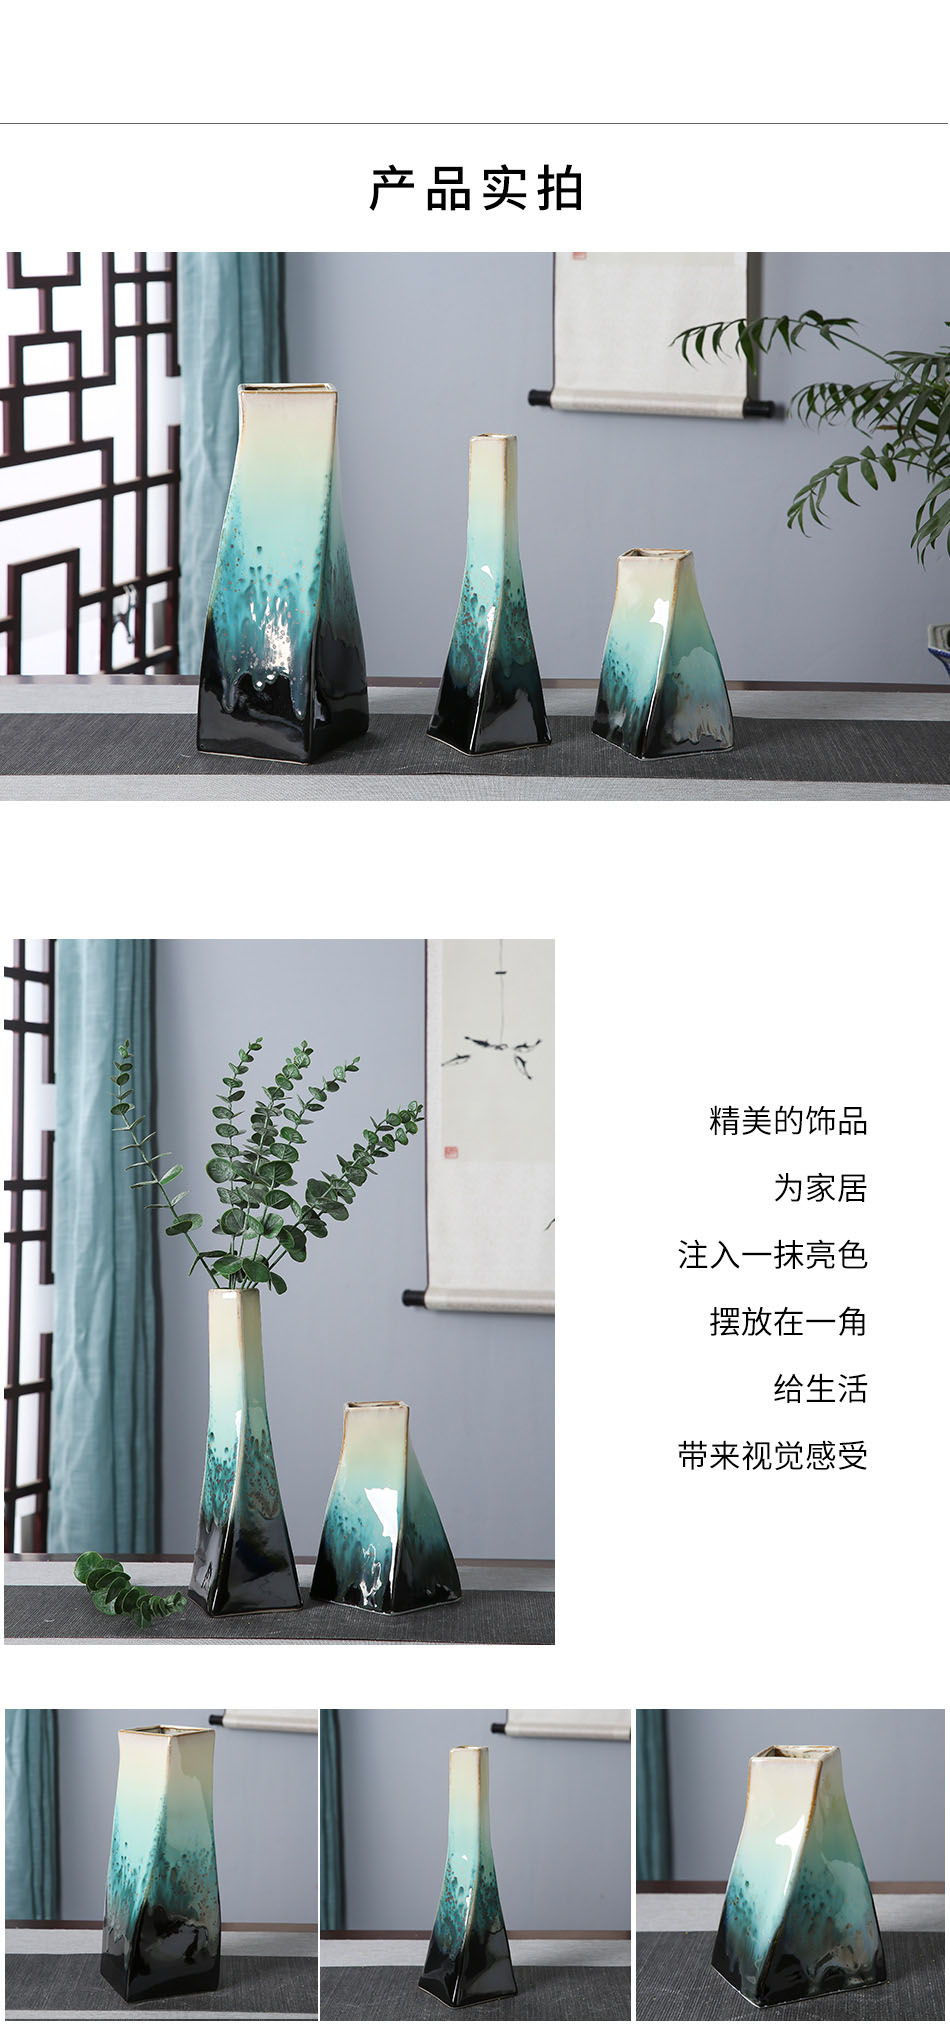 I and contracted furnishing articles of jingdezhen ceramic vase color glaze malachite green square home sitting room flower flower